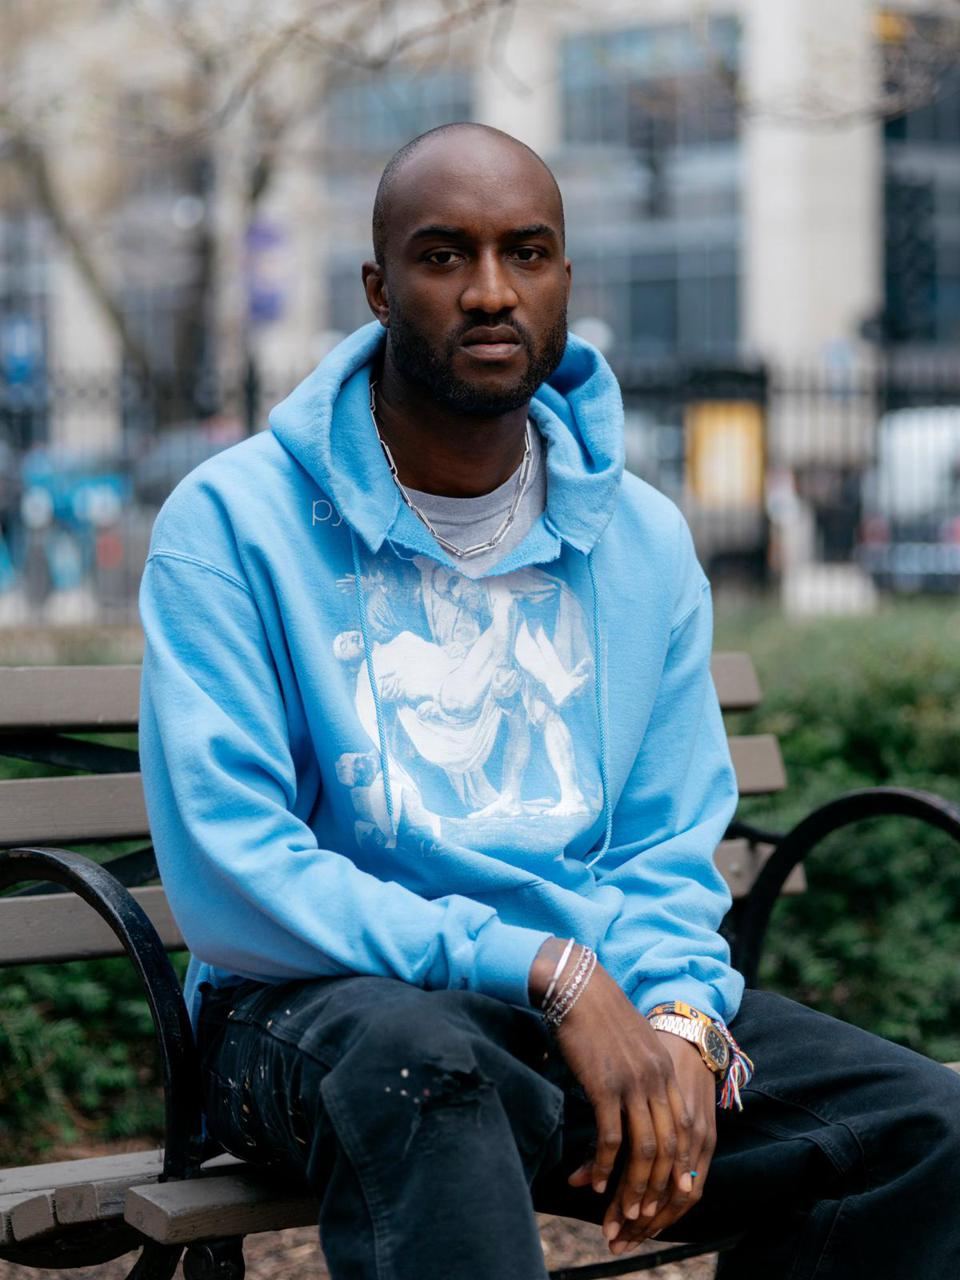 Virgil Abloh at the Museum of Contemporary Art Located in Chicago.